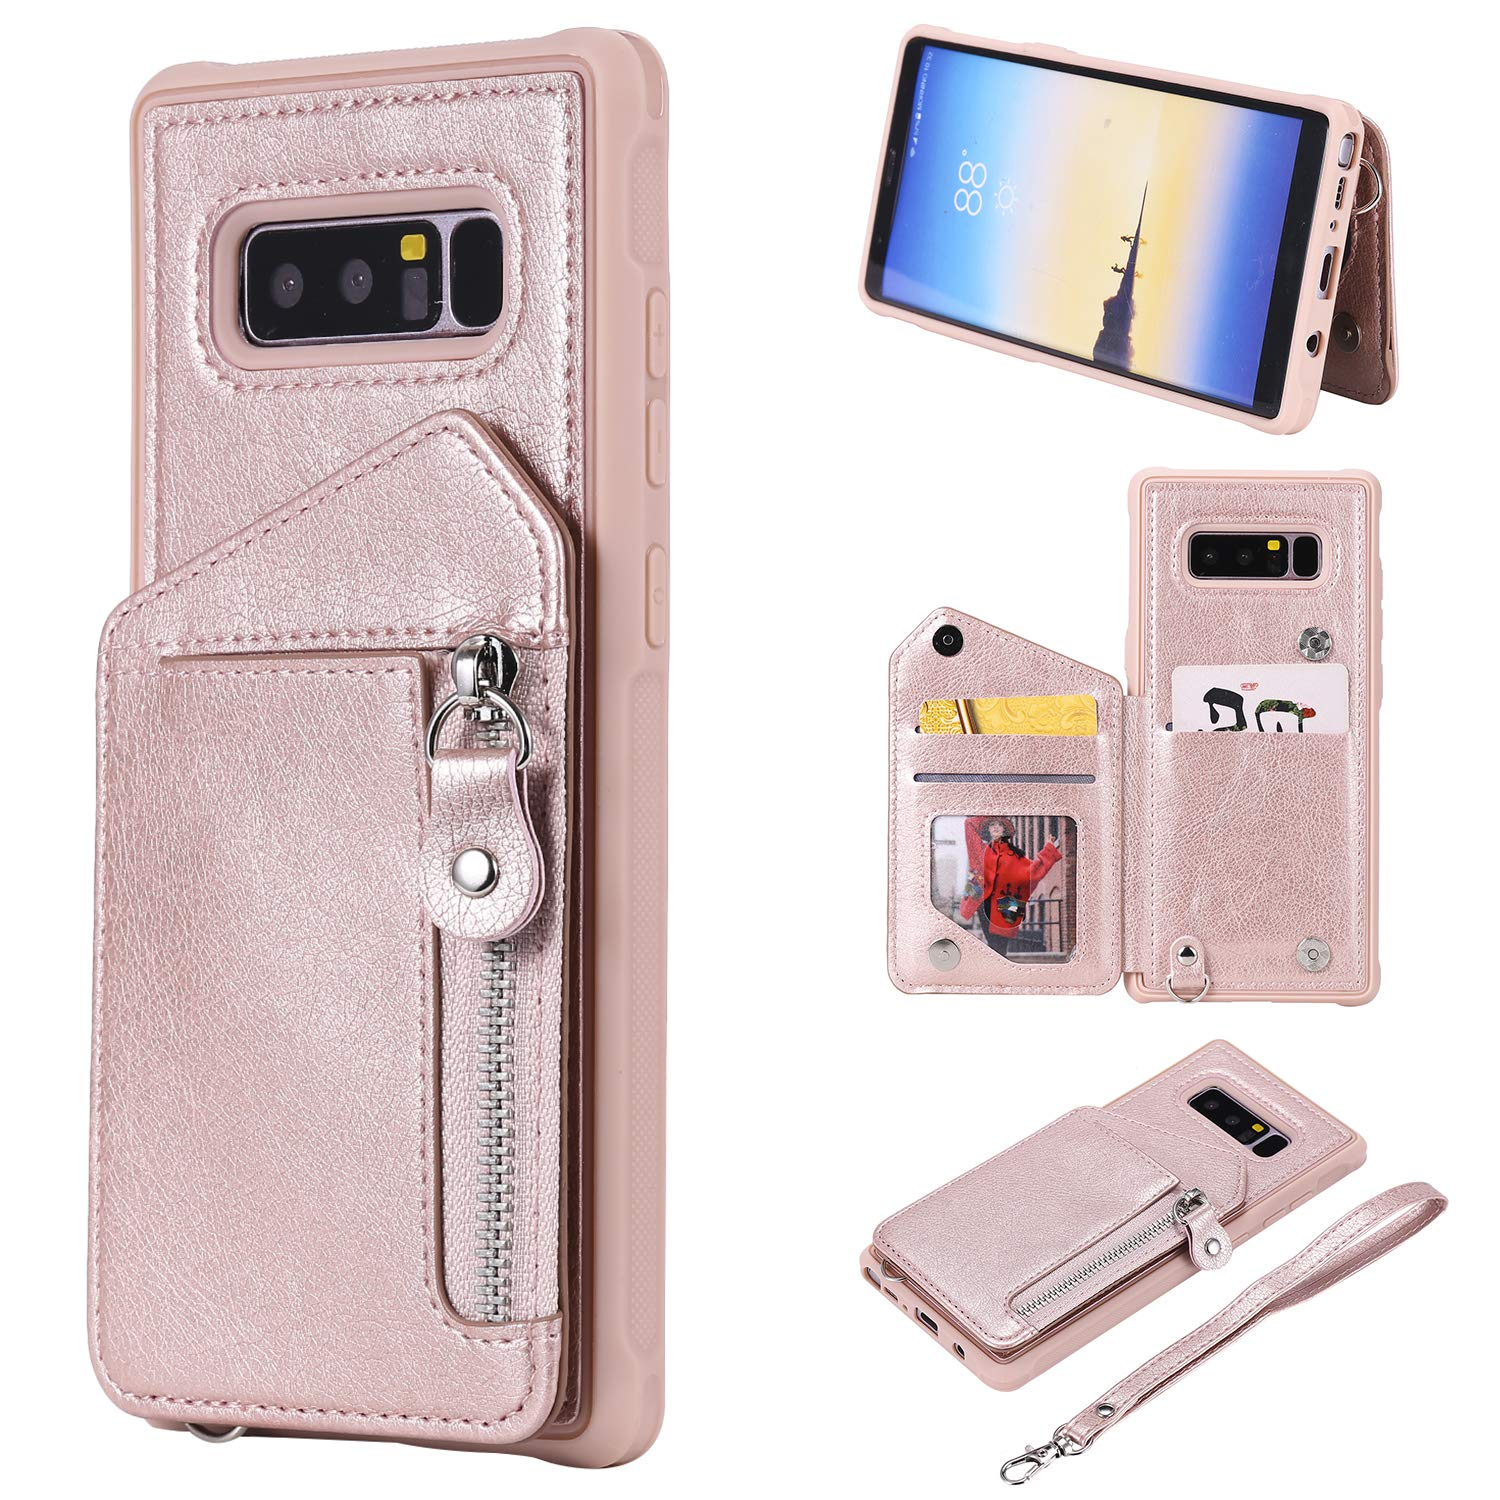 DAMONDY Case for Galaxy Note 8, Zipper Wallet Purse Card Holders Design Cover Soft Shockproof Bumper Folio Flip Leather Kickstand Clasp Wrist Strap Case for Samsung Galaxy Note 8 (2017)-Rose Gold by DAMONDY